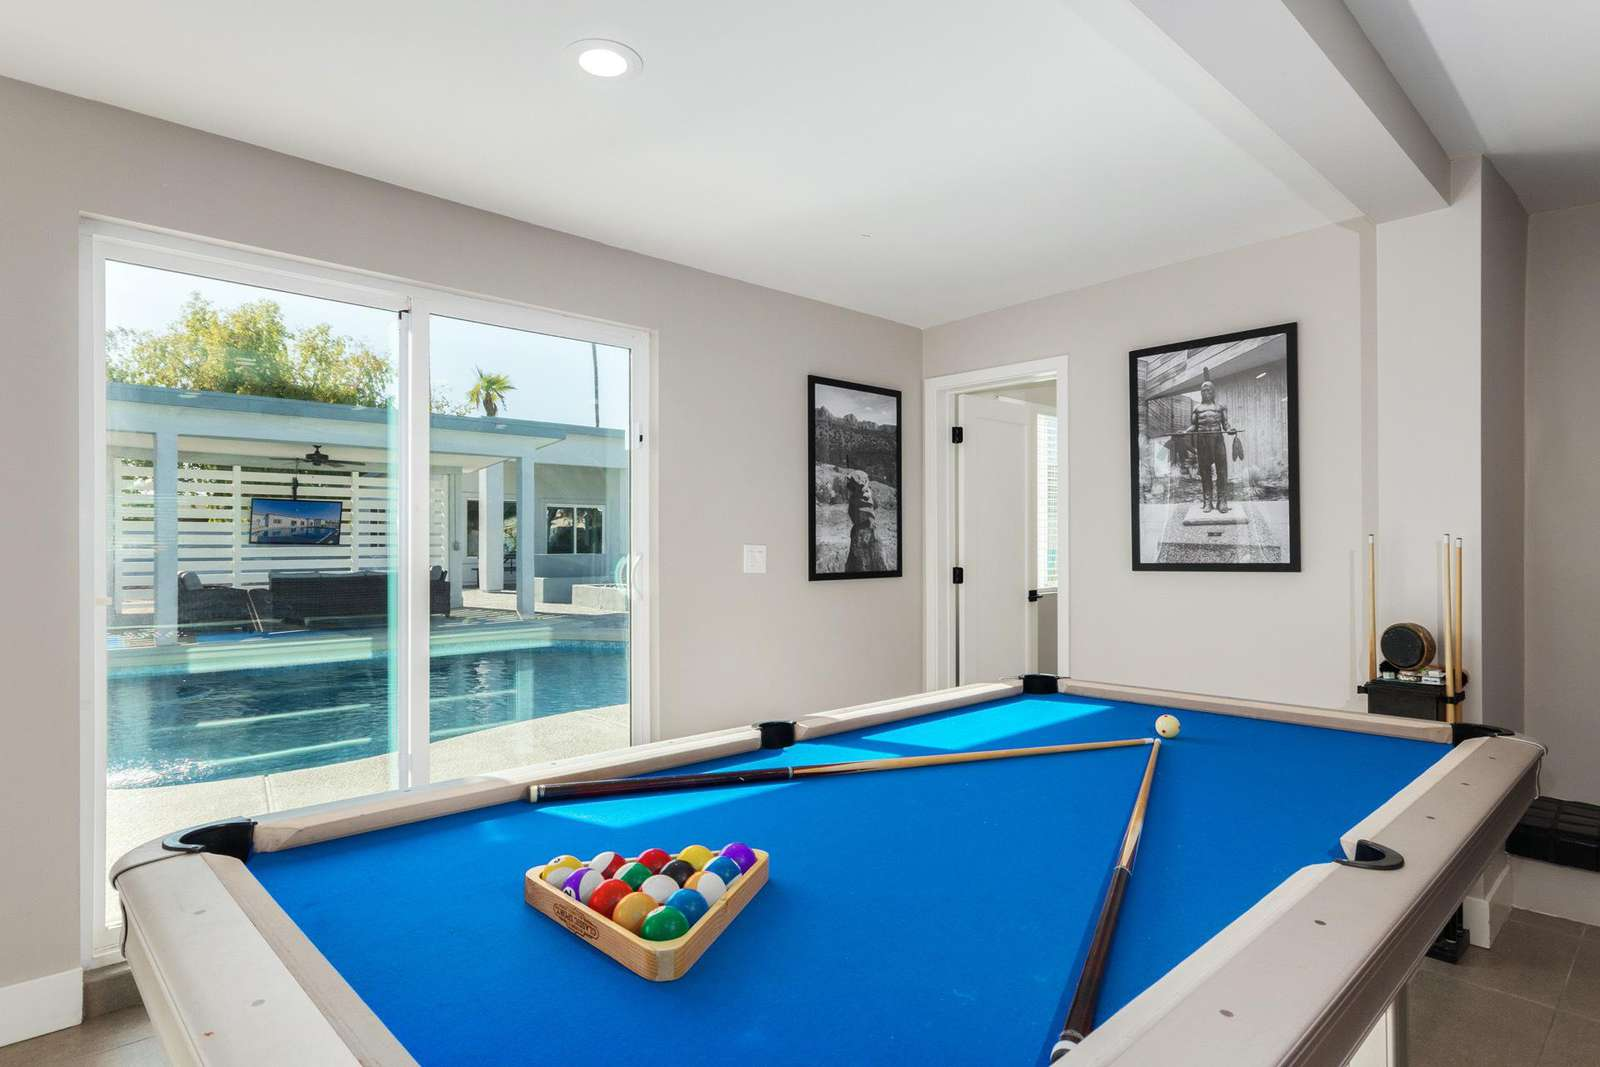 Pool Table Has Great Pool Views